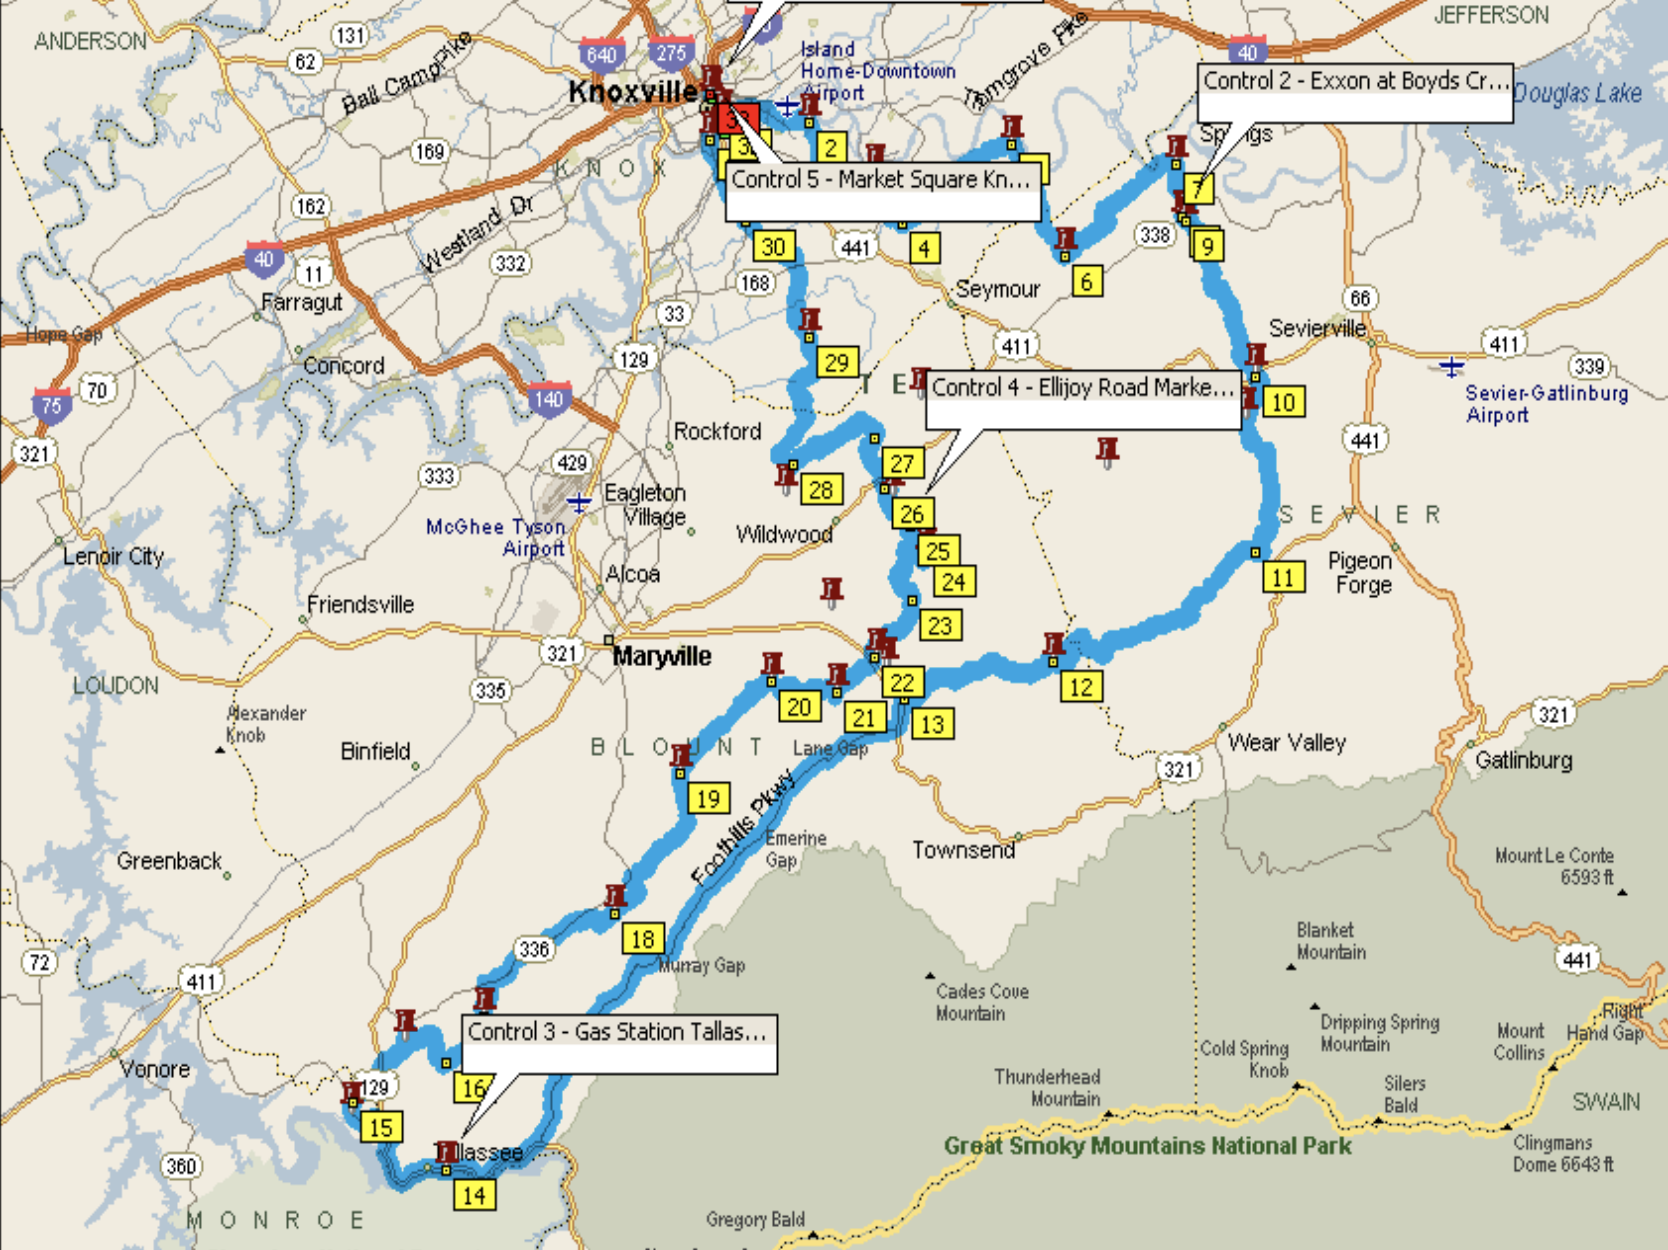 Fall Colors 200K - October 19, 2019200k: Ride With GPS Route200k: PDF RouteStarts from The Mushroom Shop in Knoxville, TN